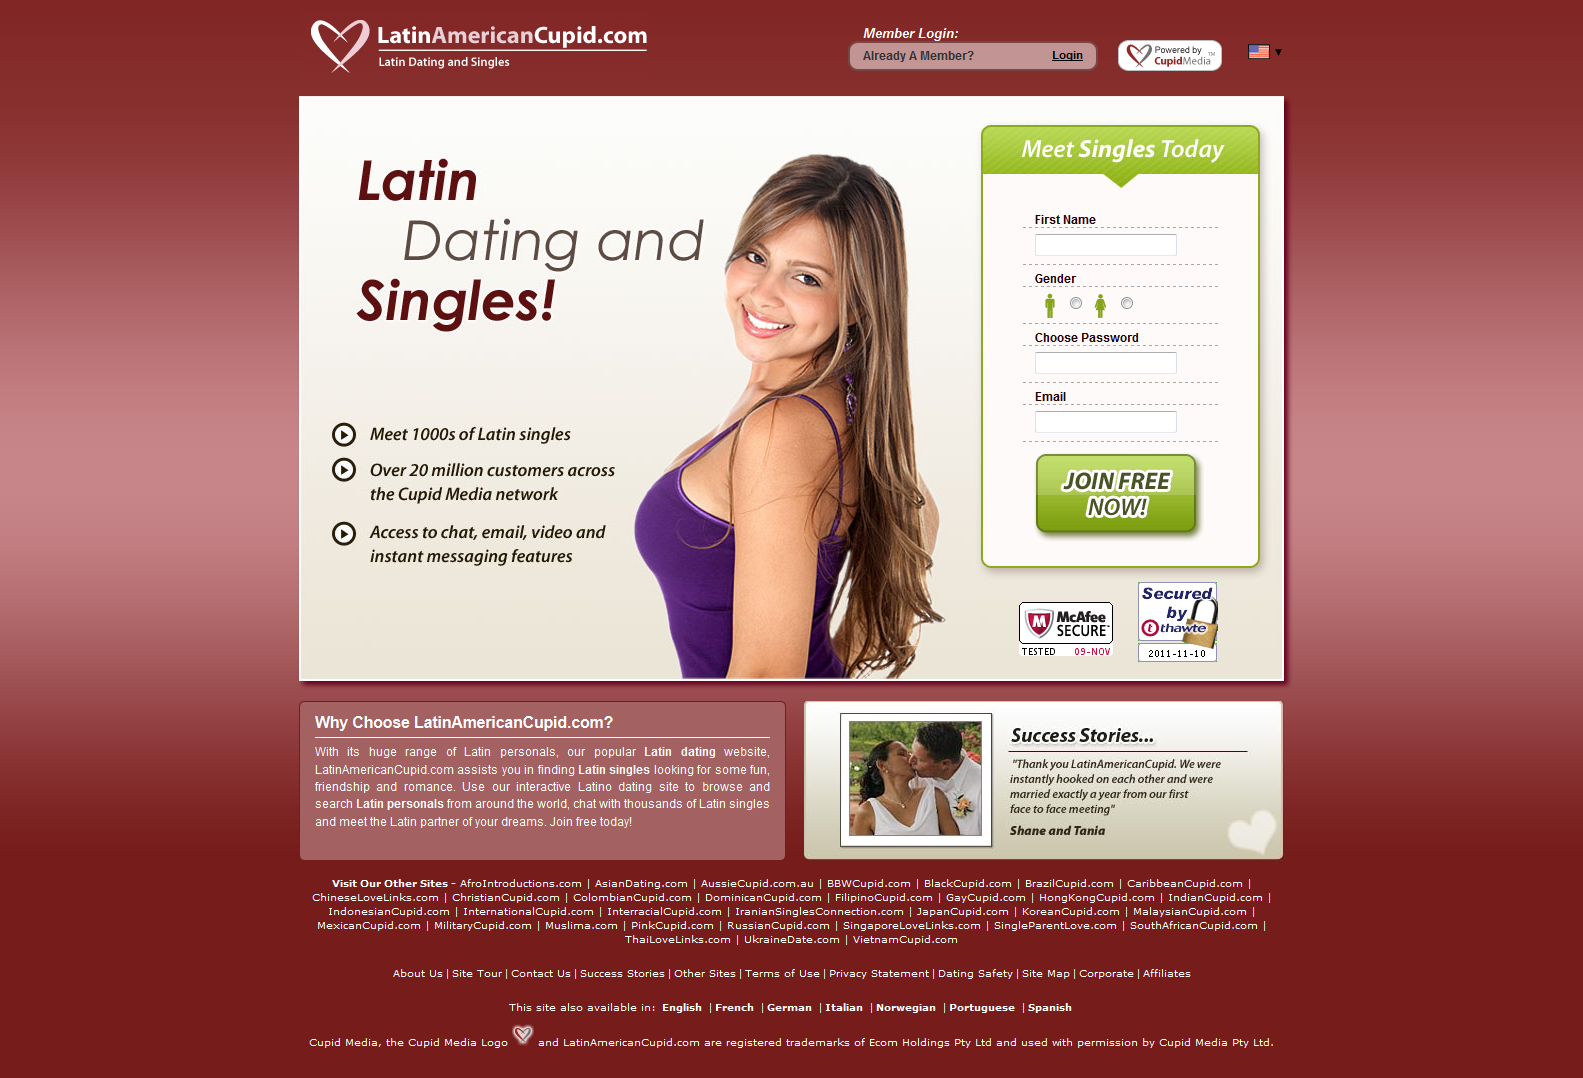 Find someone on dating sites by email